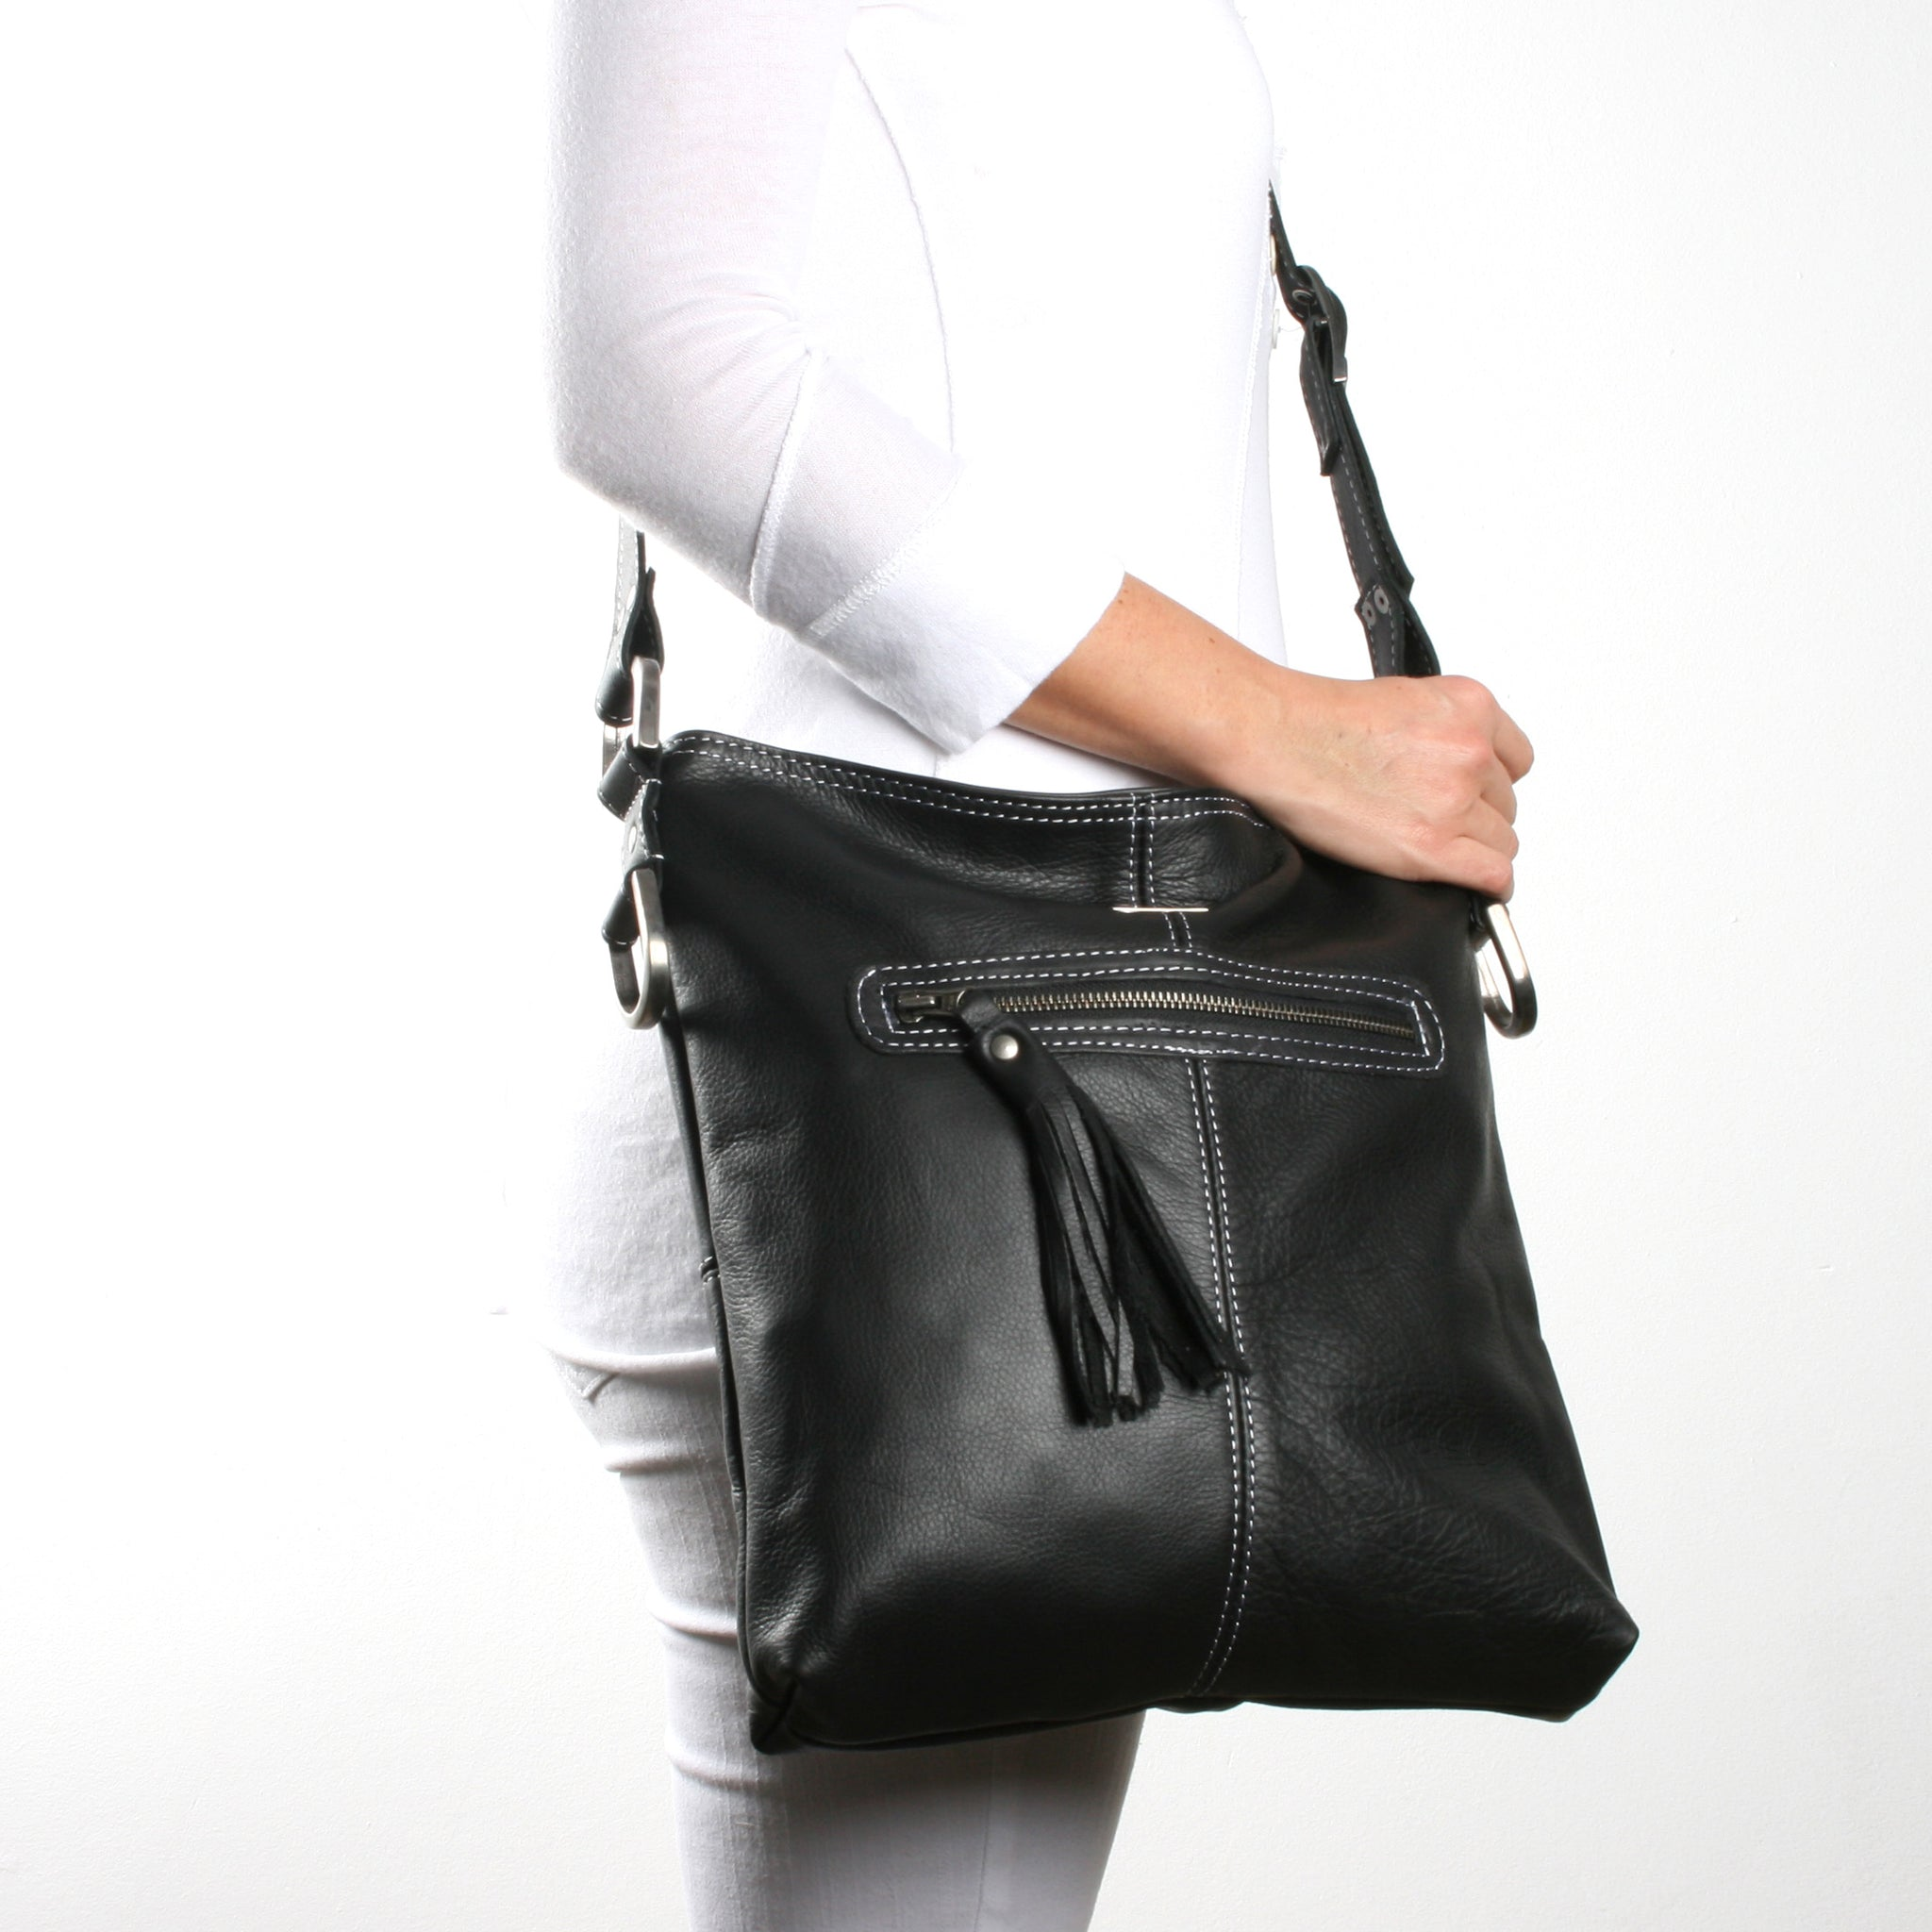 Thandana Messenger Sling Bag - Black - Zufrique Boutique